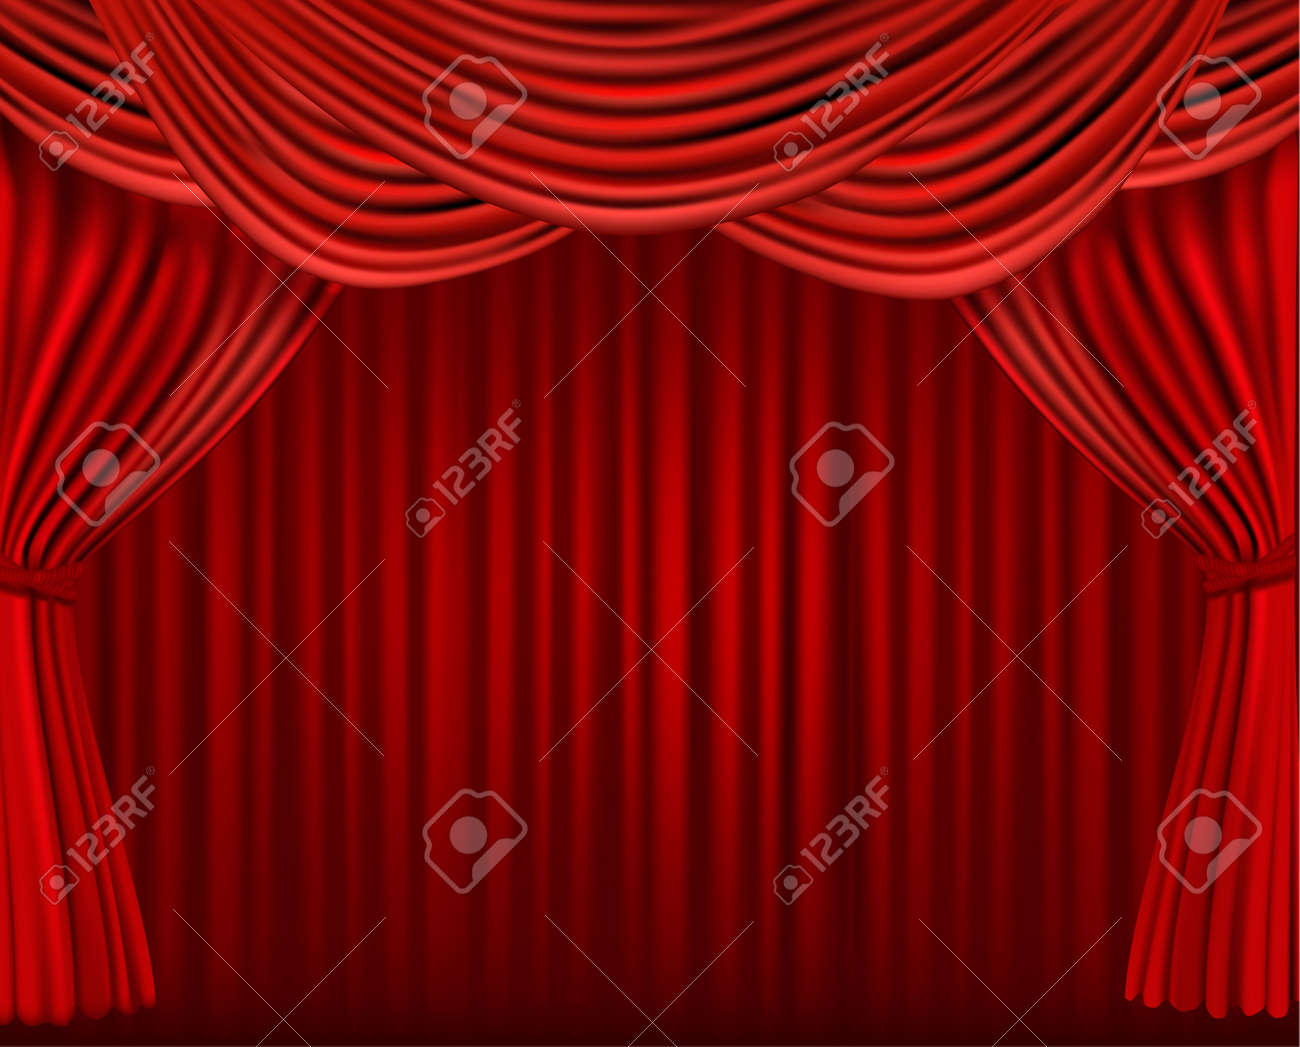 Red velvet curtain wallpaper - Movie Wallpaper Background With Red Velvet Curtain Illustration